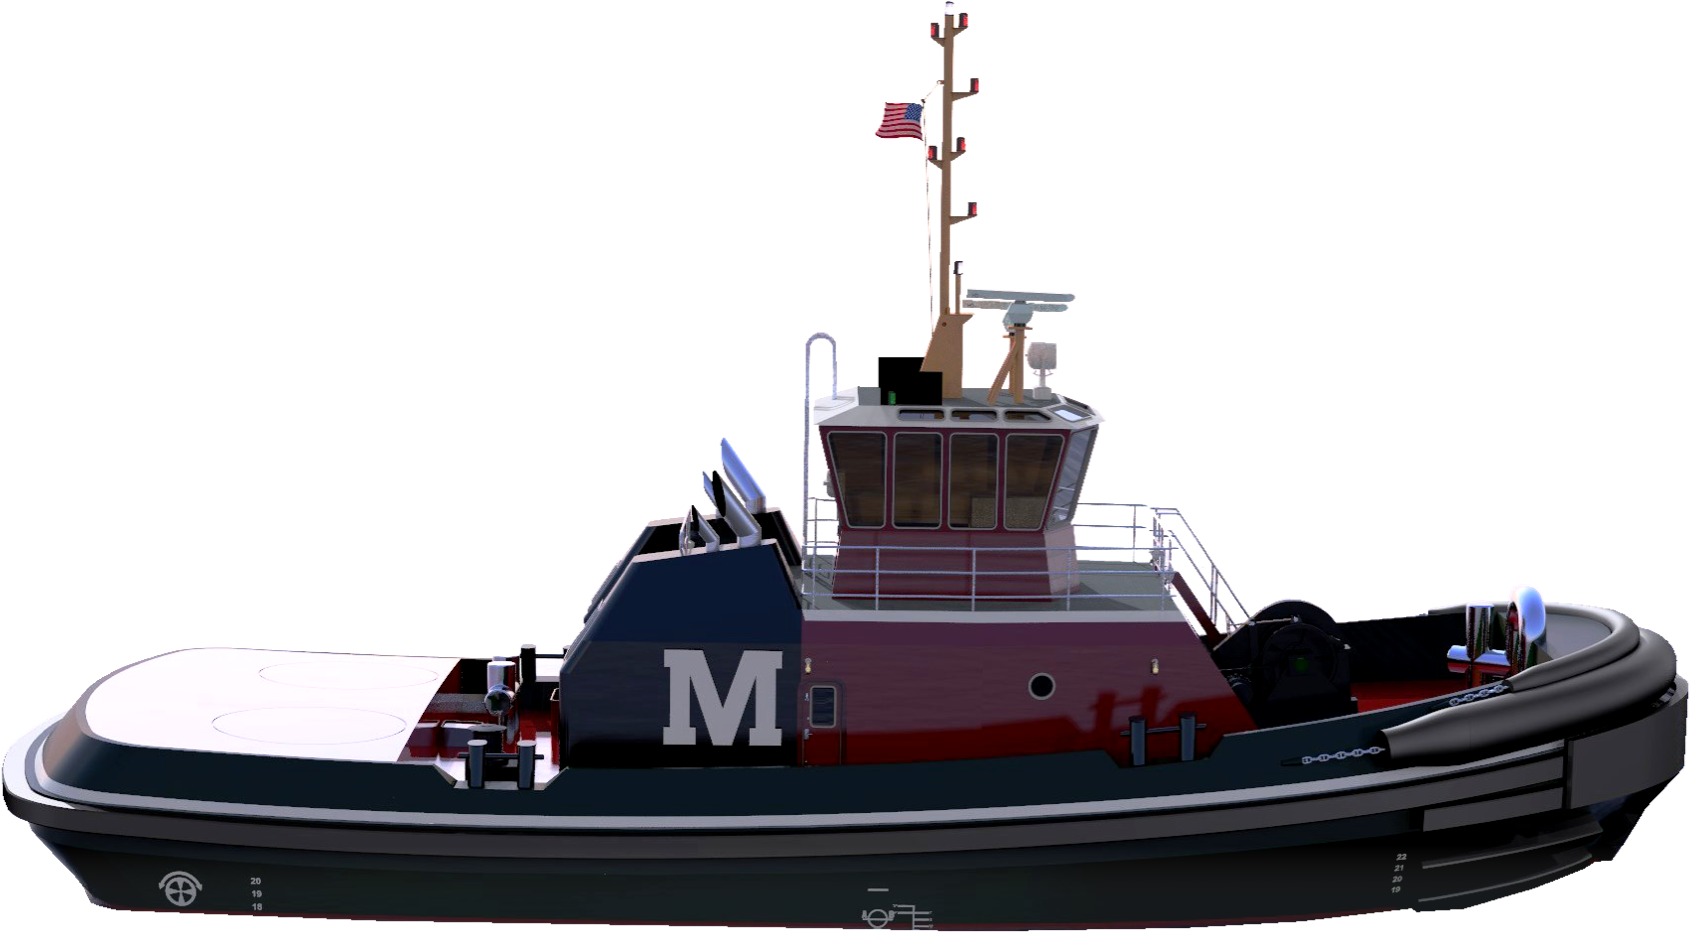 Moran Towing Tugboat